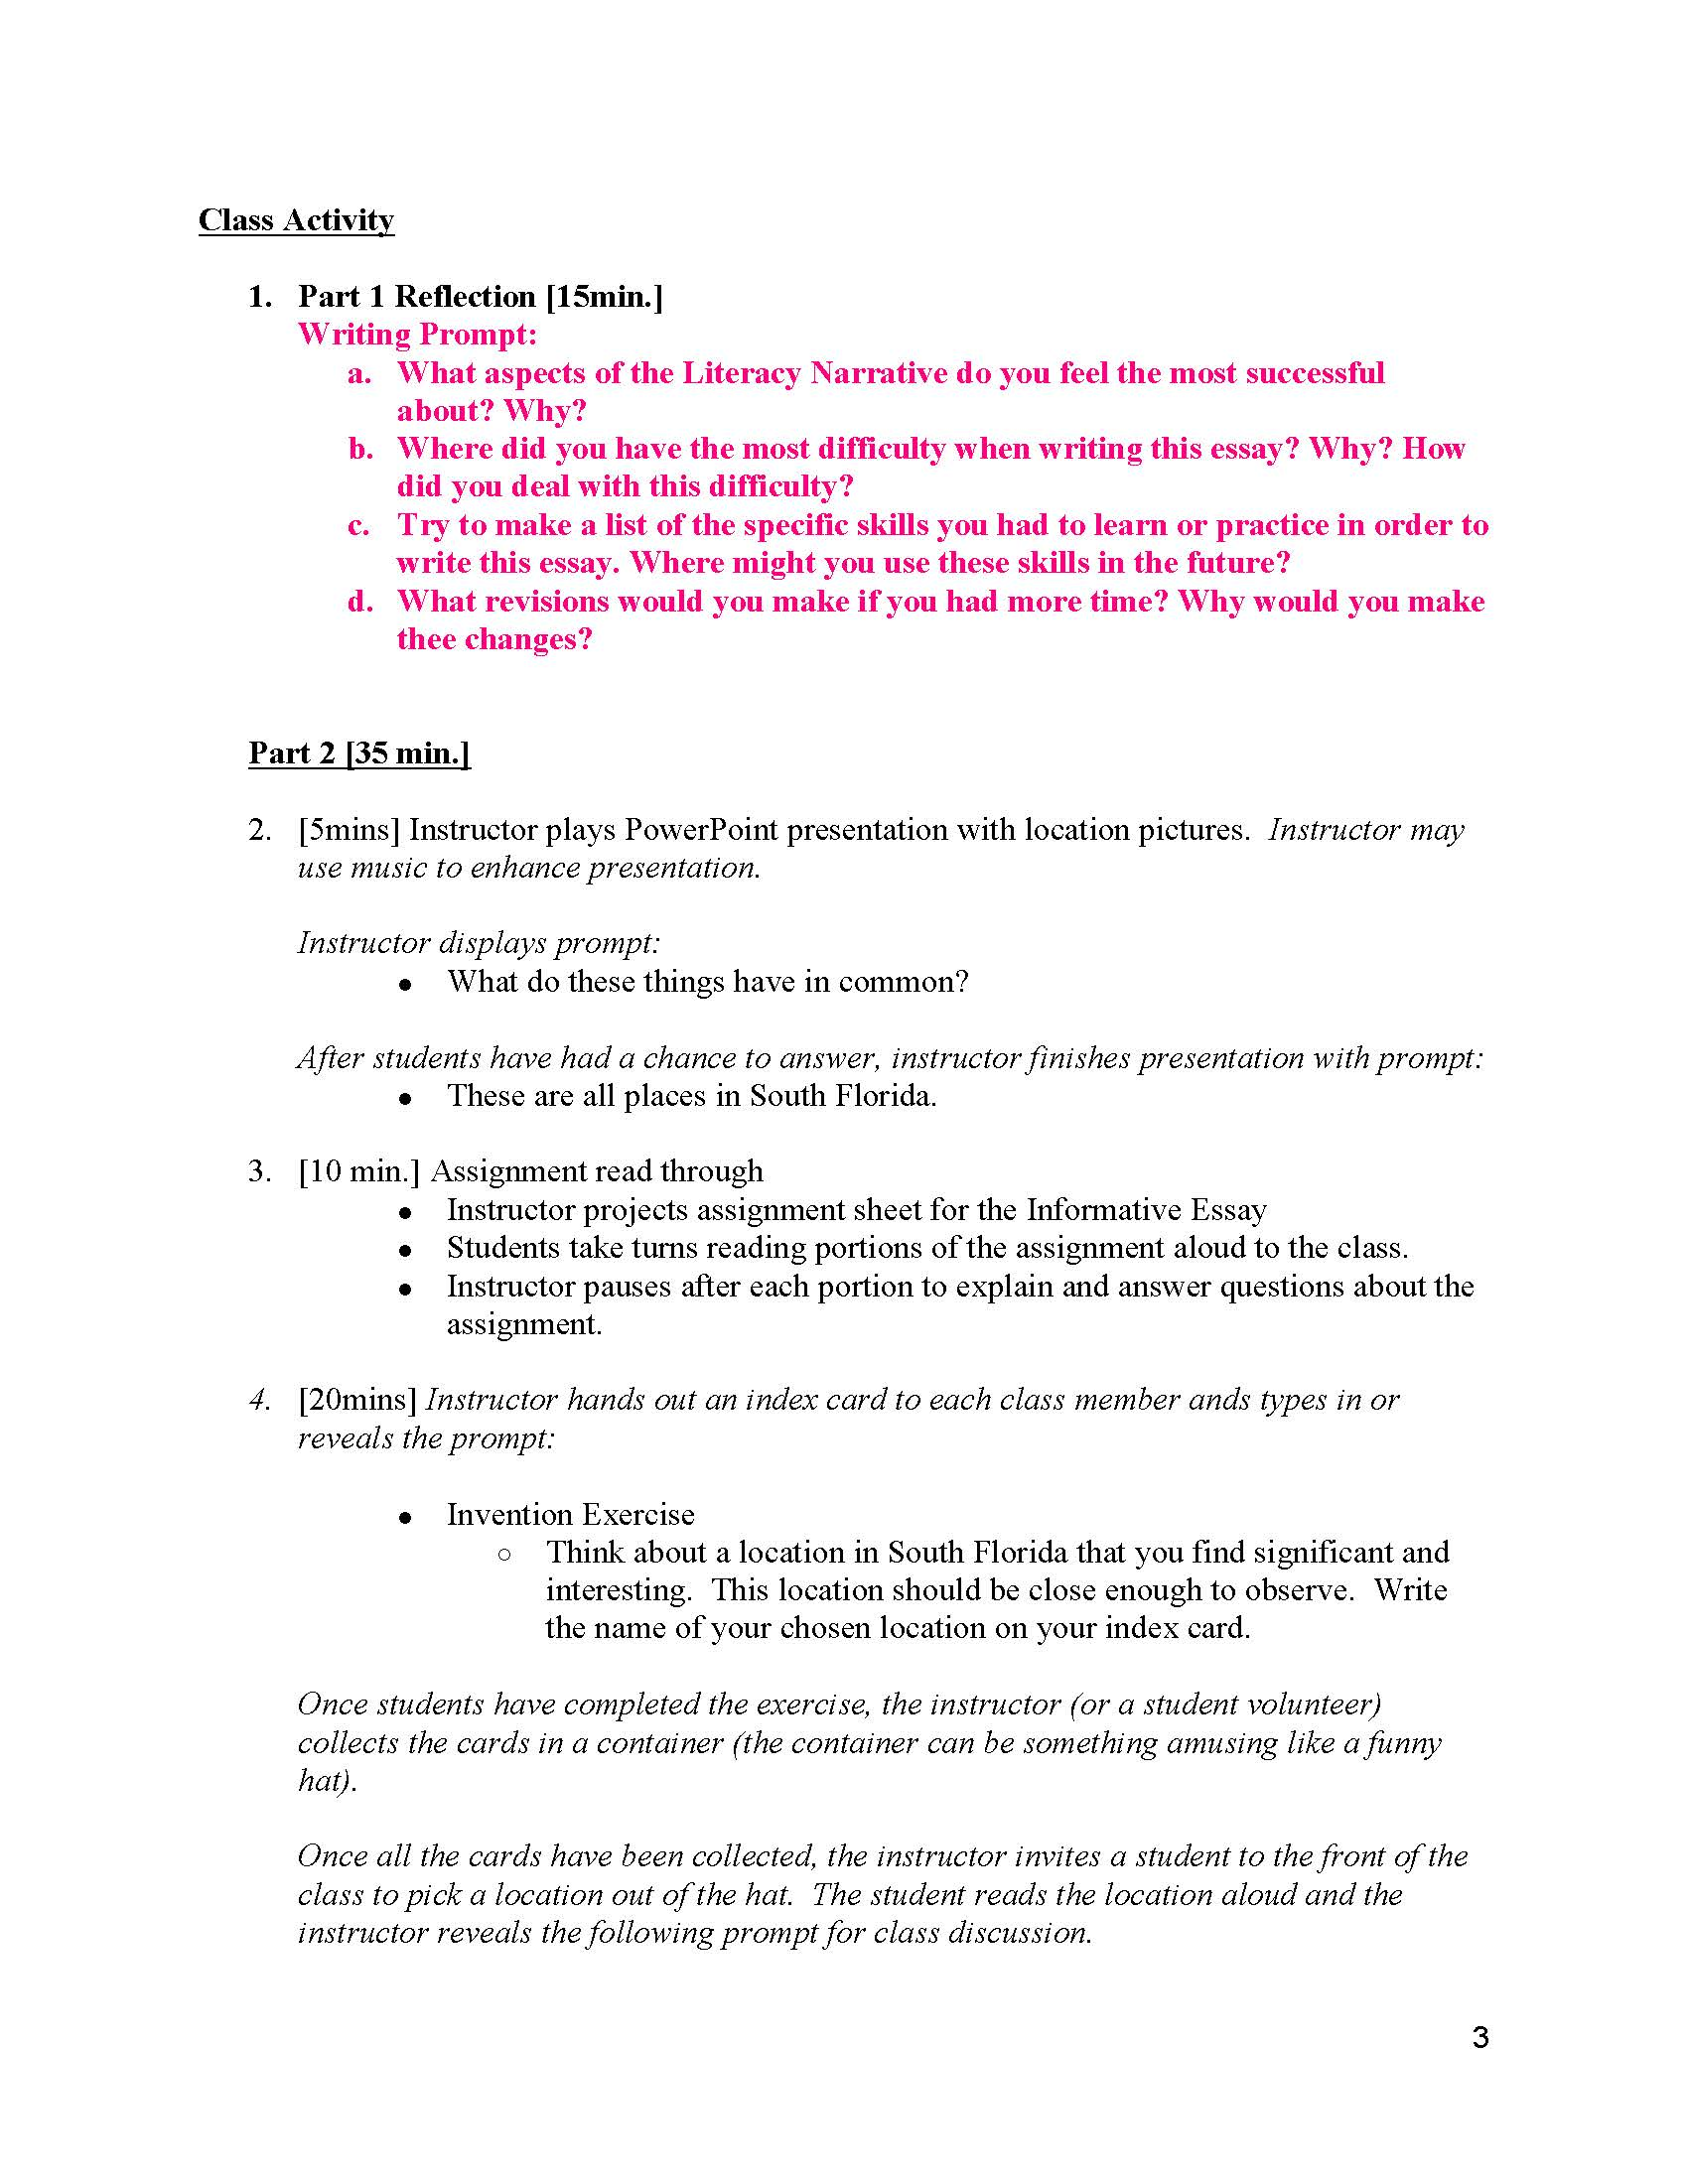 019 What Is An Informative Essay Unit 2 Plans Instructor Copy Page 03 Top Example The Main Purpose Of Full